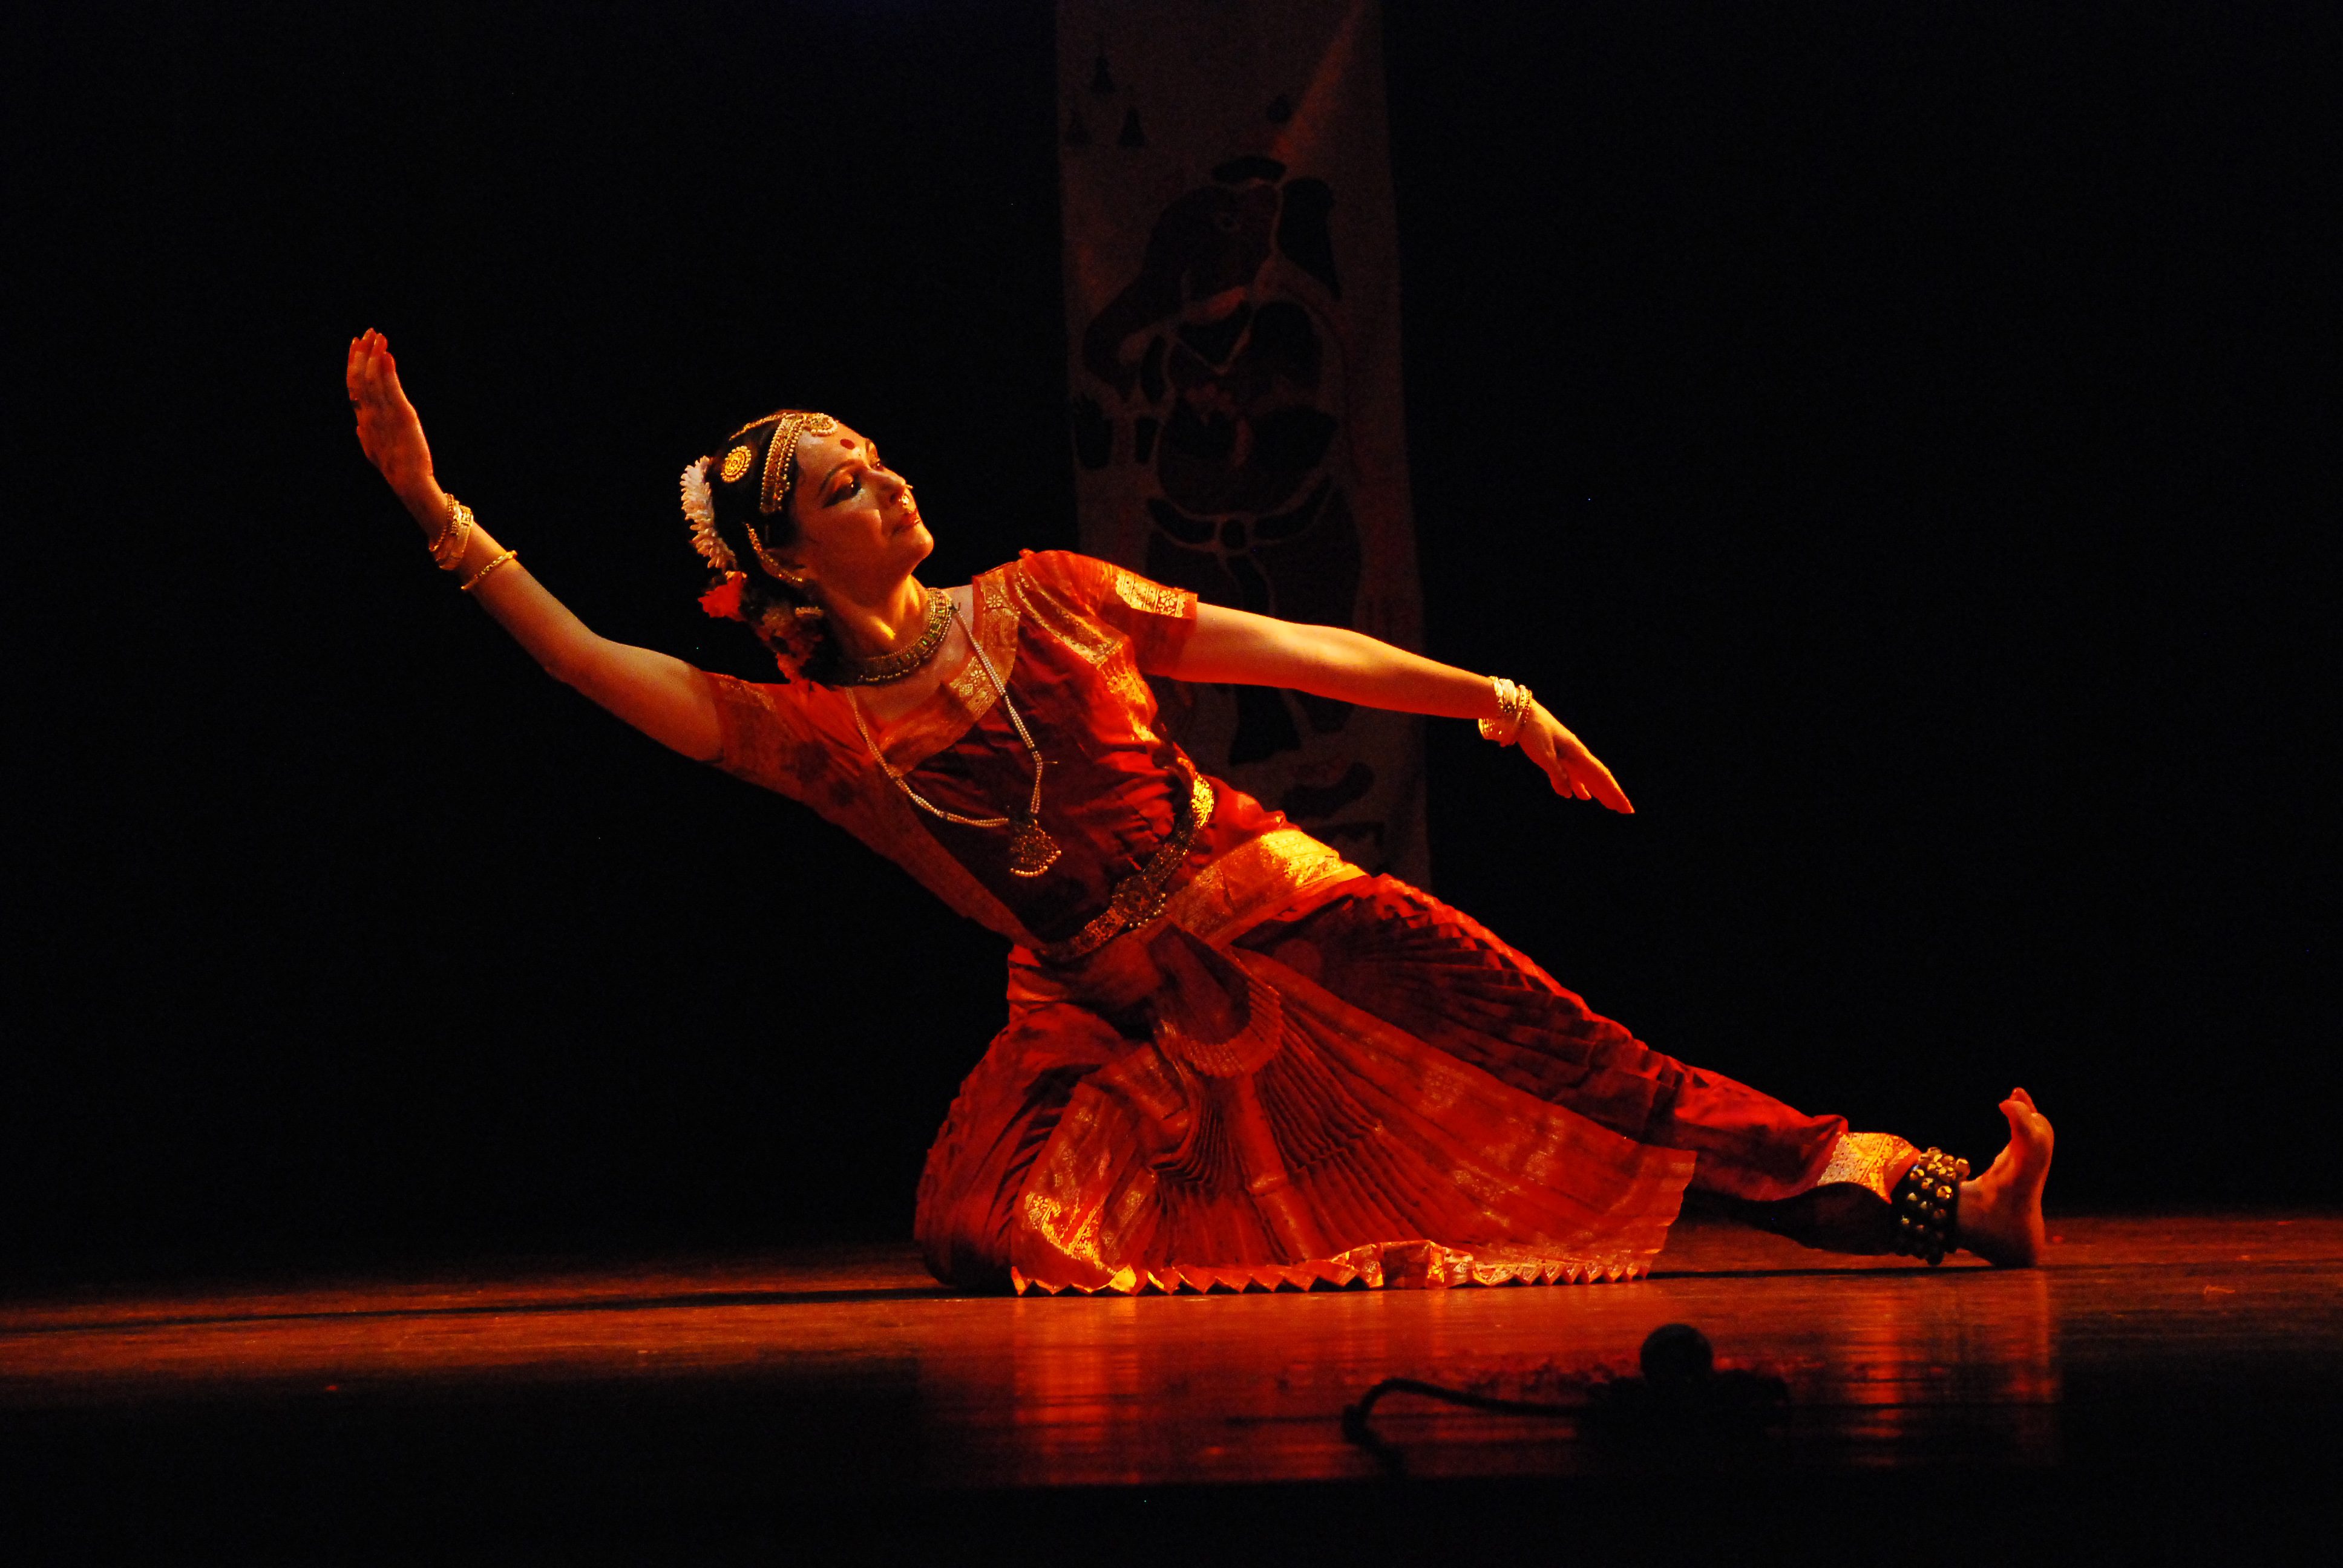 The live, one-on-one, real time, interactive online  				Bharatanatyam dance class lessons are conducted through Skype and these online dance classes are available to learn all the major  				Bharatanatyam dance styles – Kalakshetra, Pandanallur Thanjavur, Mellatur, Kalamandalam and Vazhuvoor schools of  				Bharatanatyam Adavu dancing.